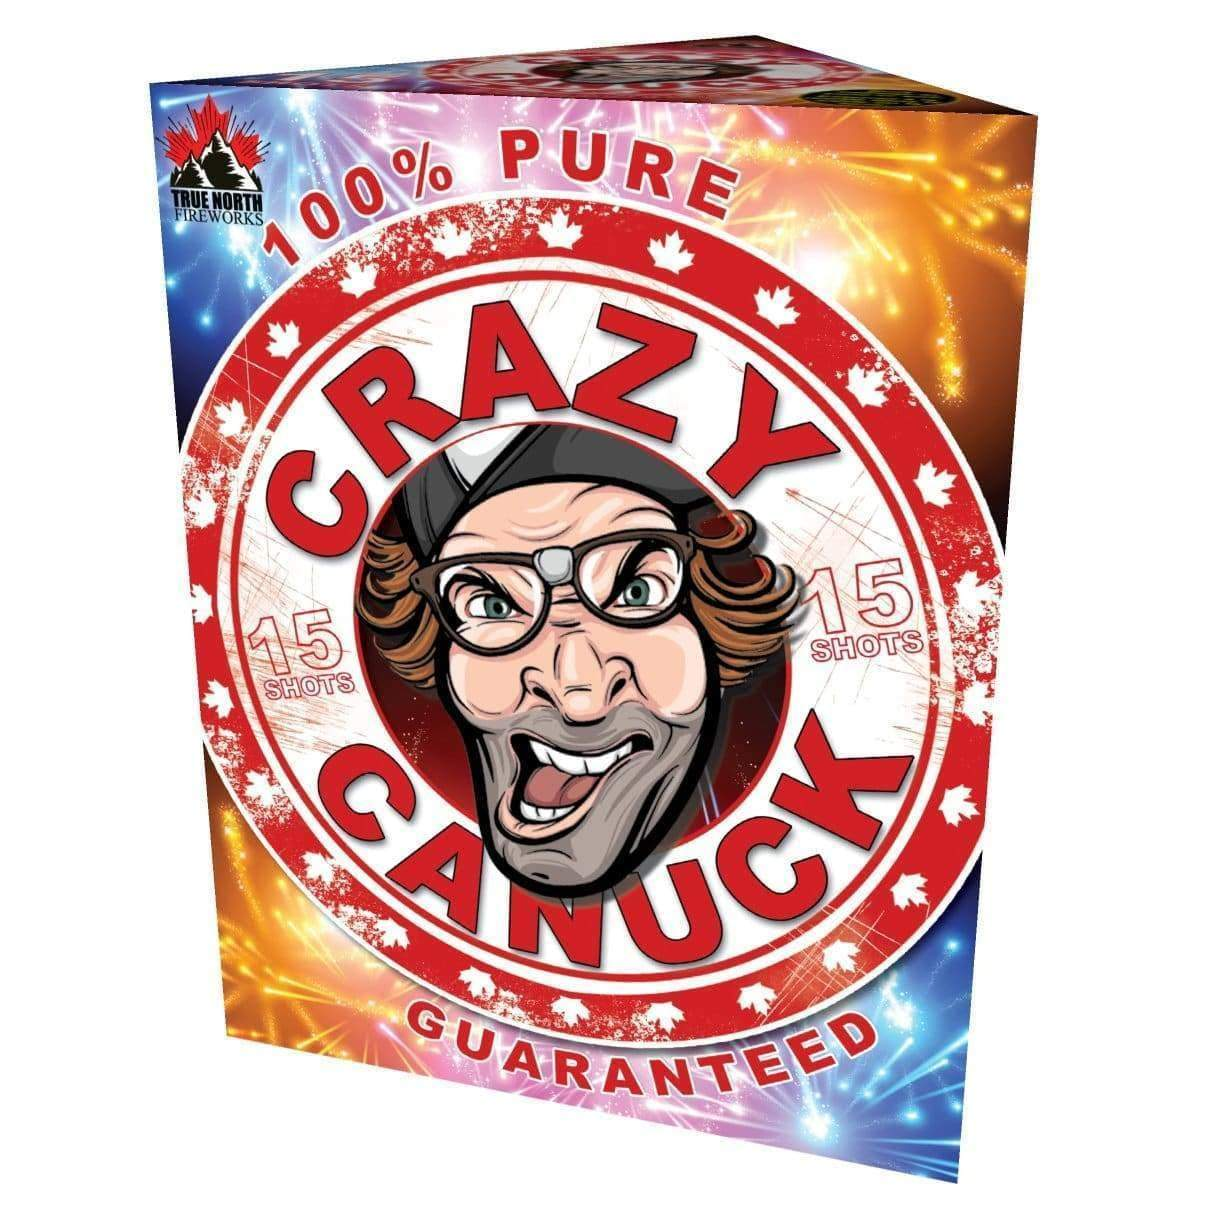 True North Fireworks Cakes Crazy Canuck